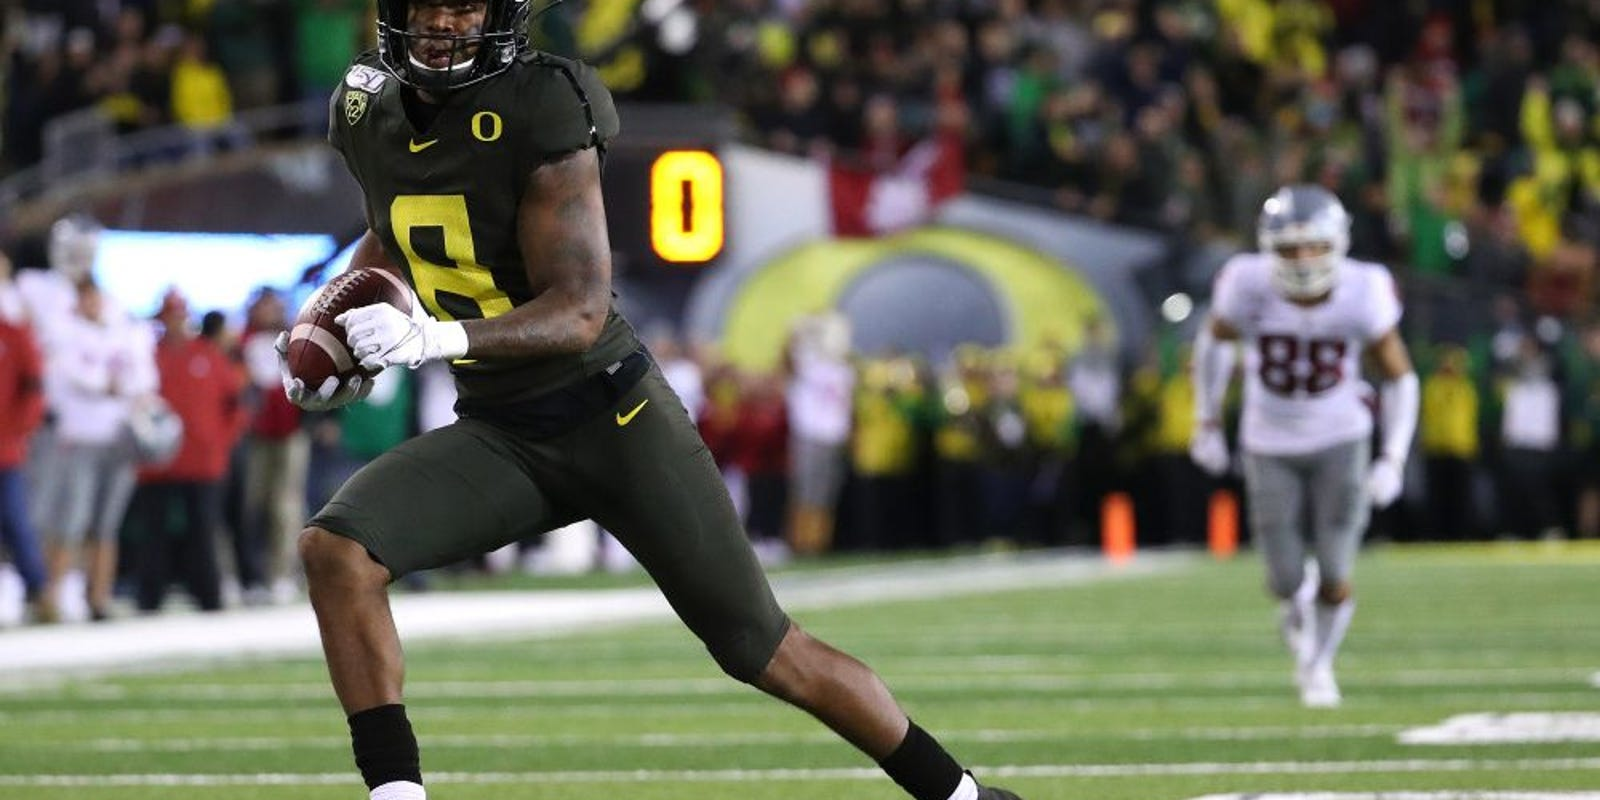 Oregon safety Jevon Holland opts out of season and declares for NFL draft